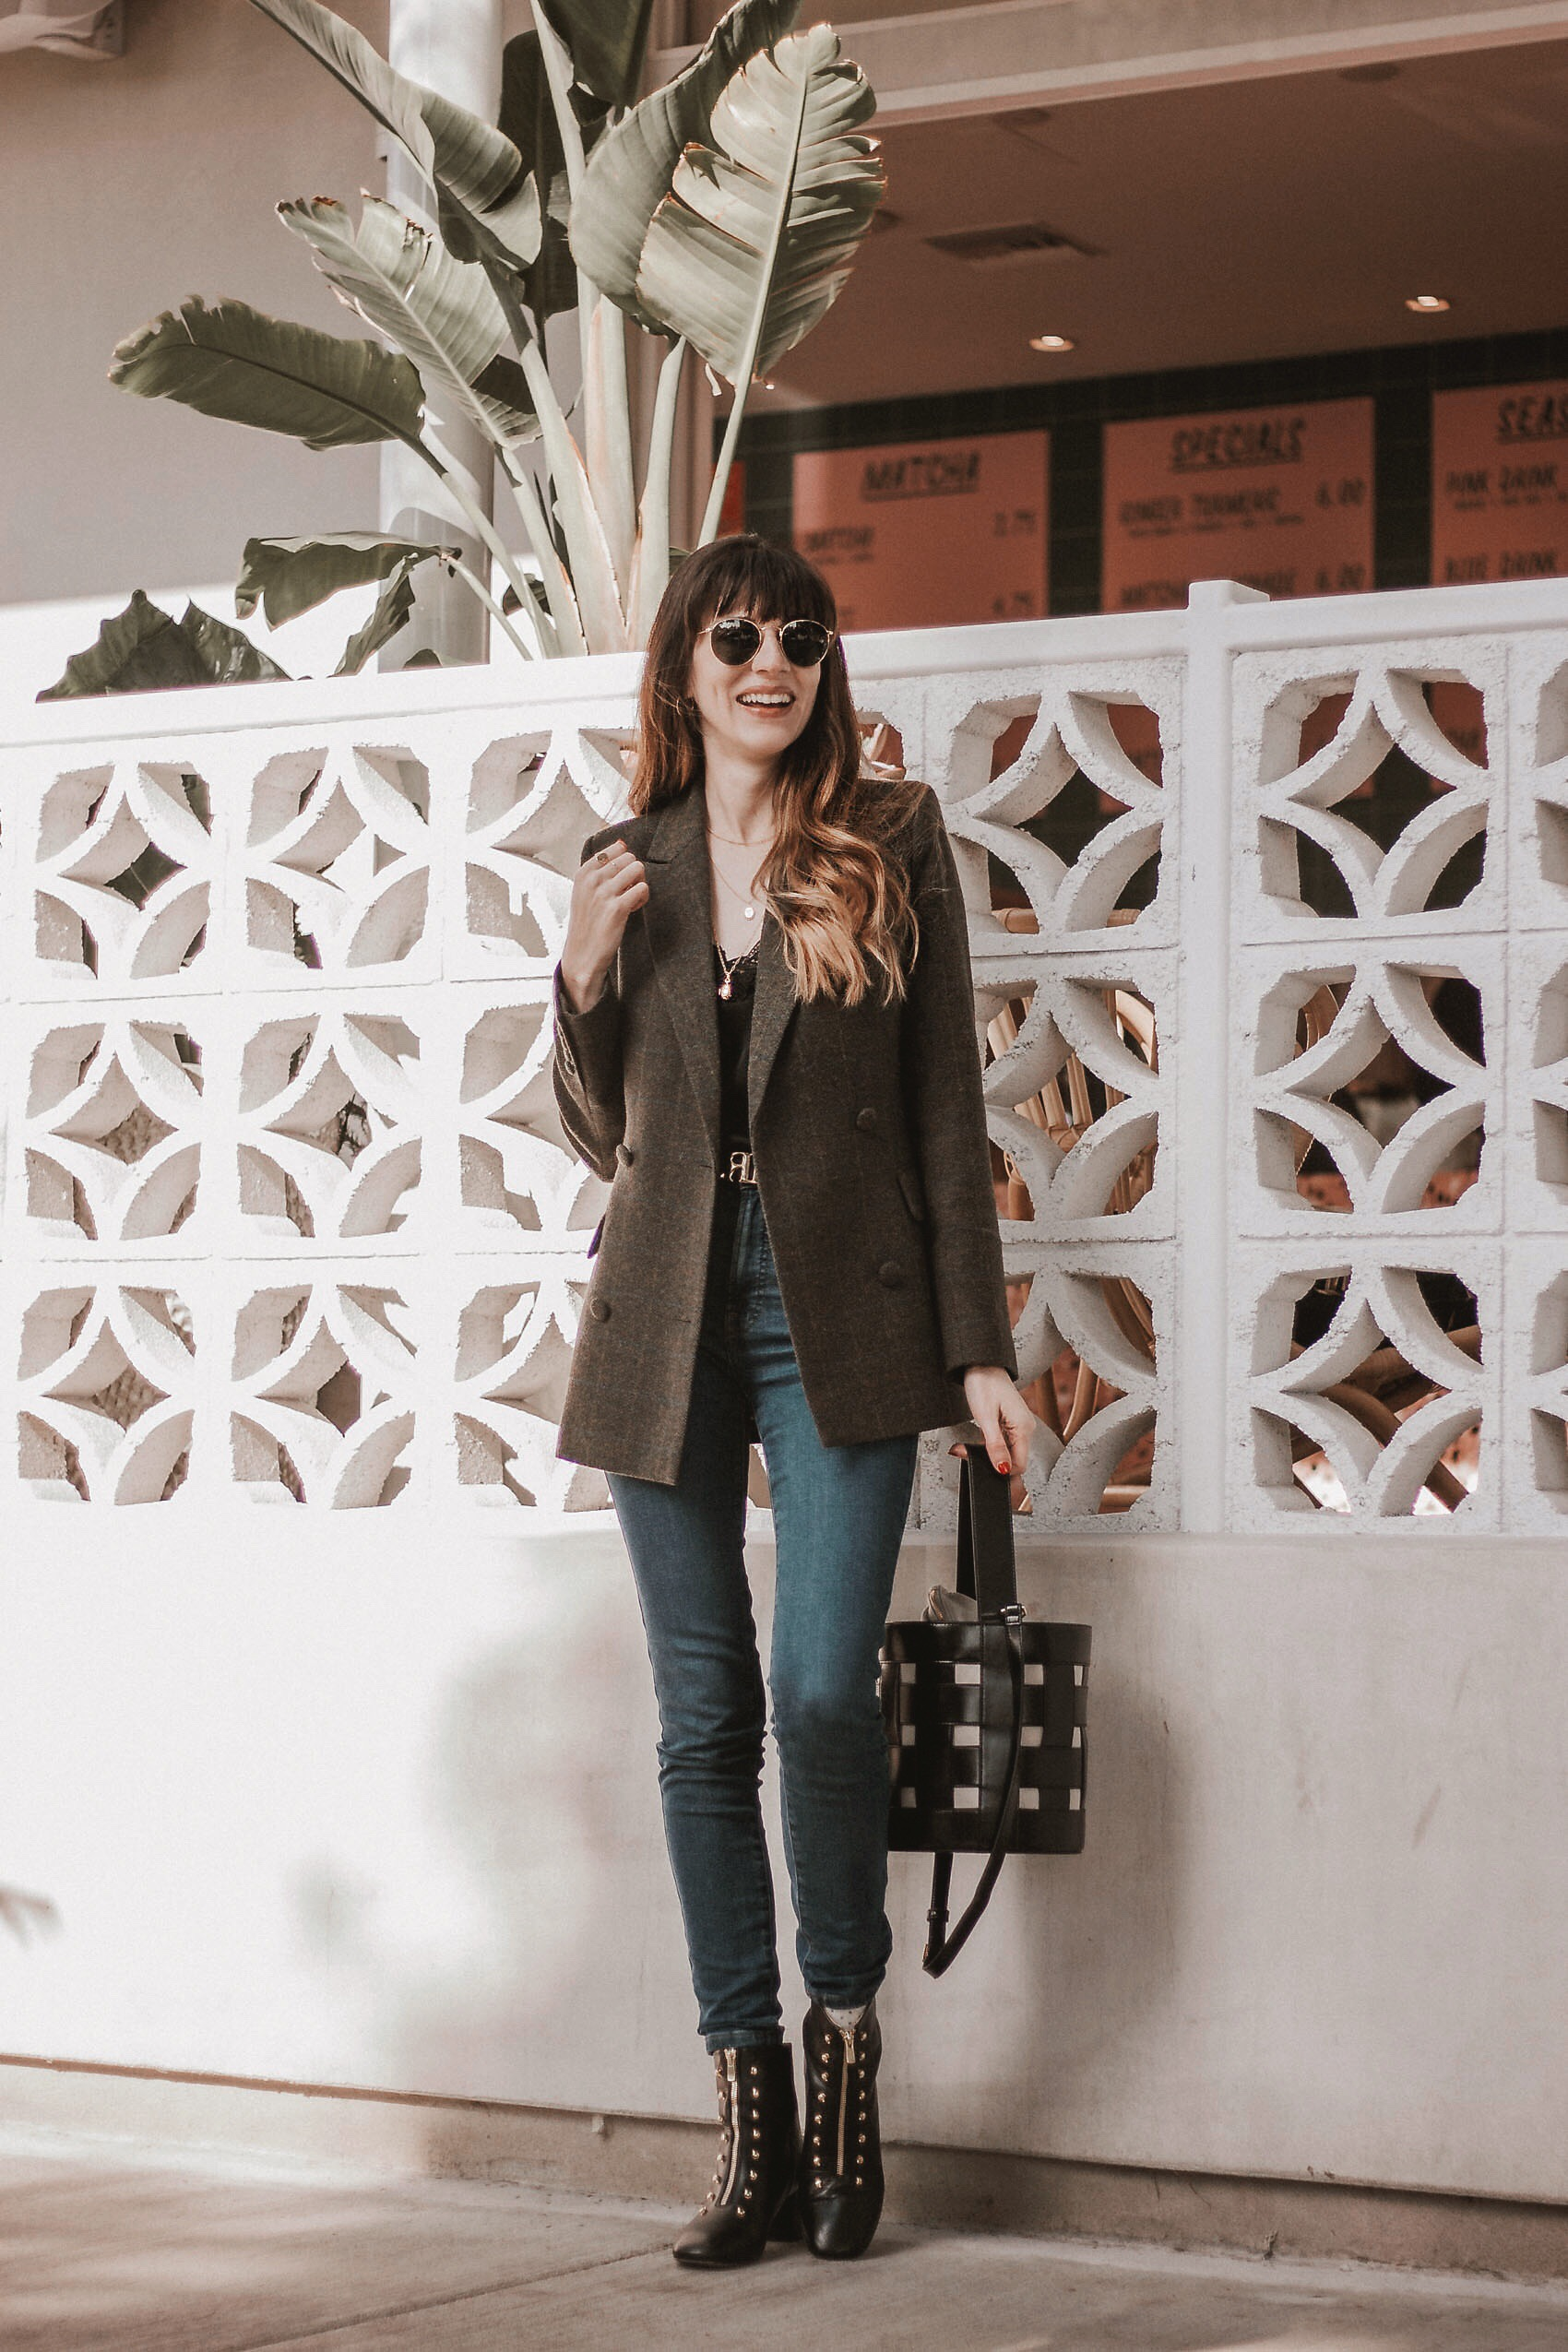 Ethical Fashion Brands: Everlane, Frank and Oak, Los Angeles Blogger Jeans and a Teacup, Cha Cha Matcha West Hollywood